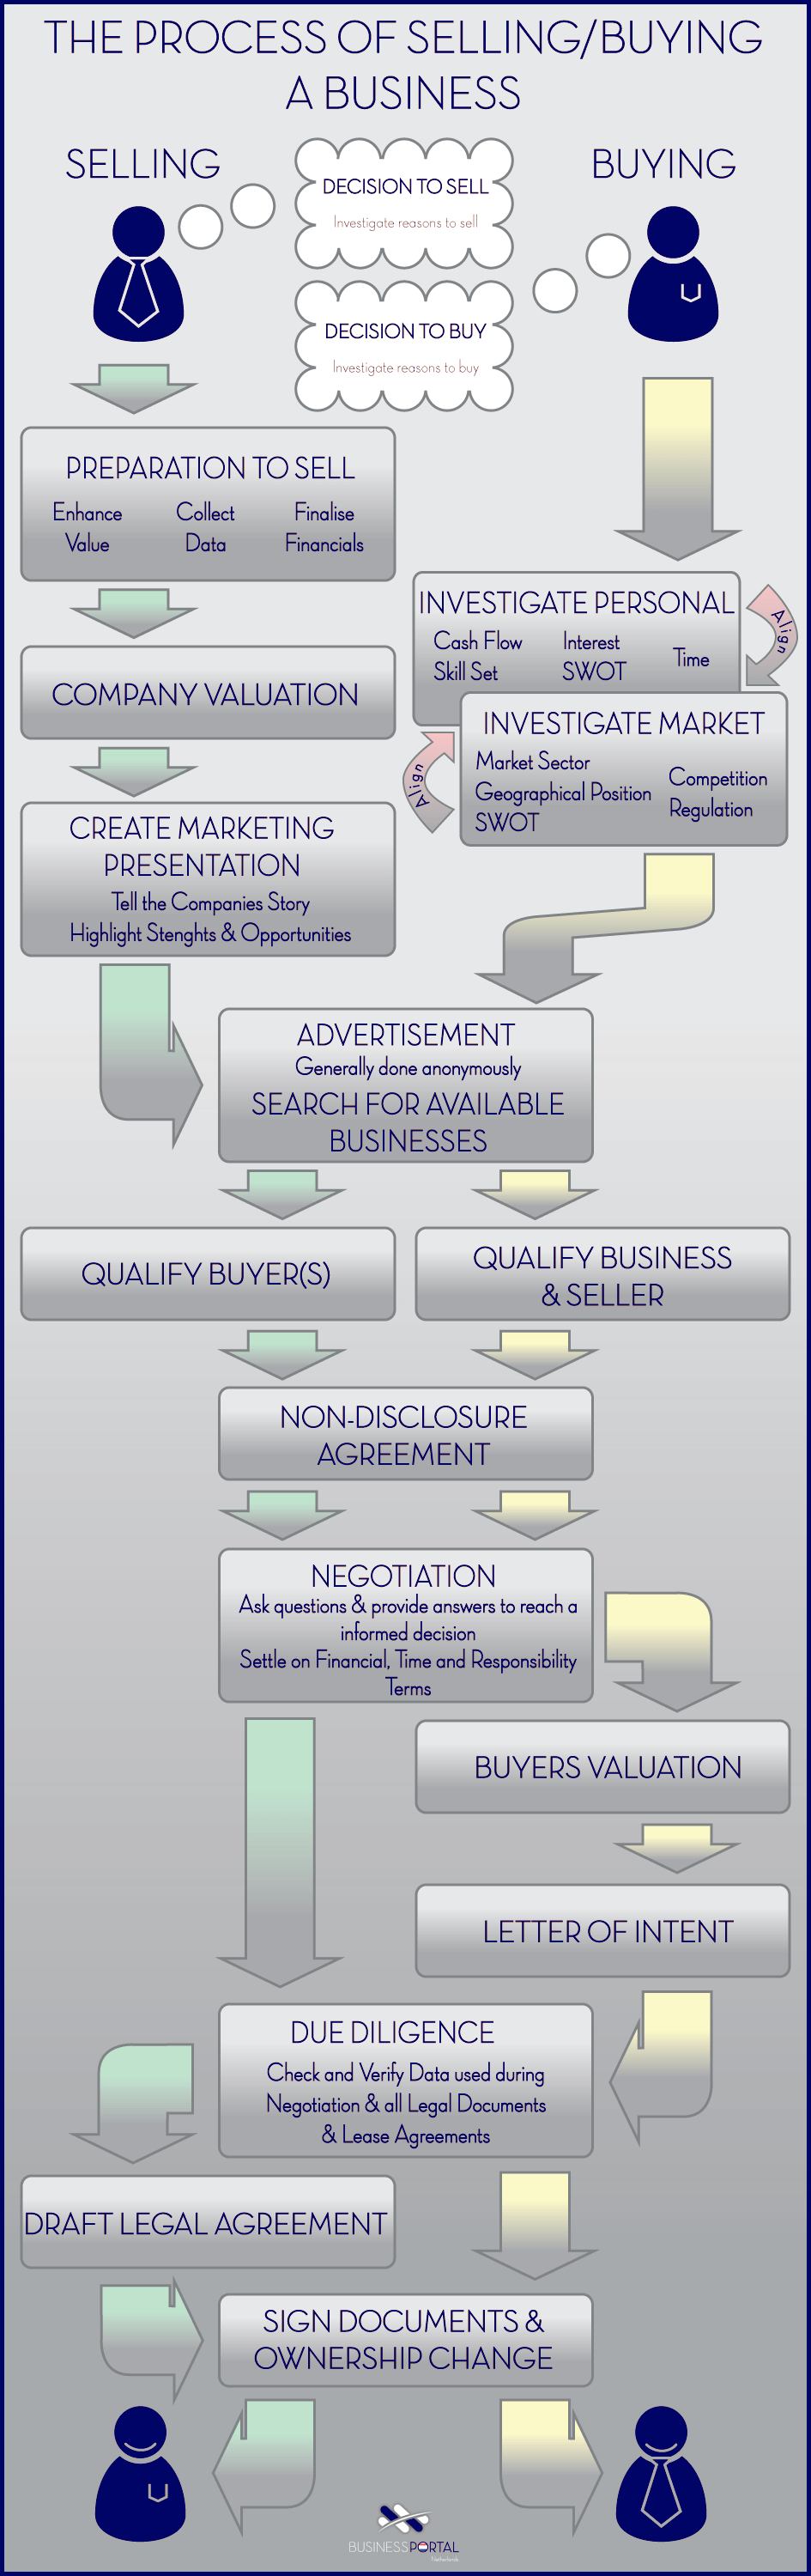 The process of buying or selling businesses